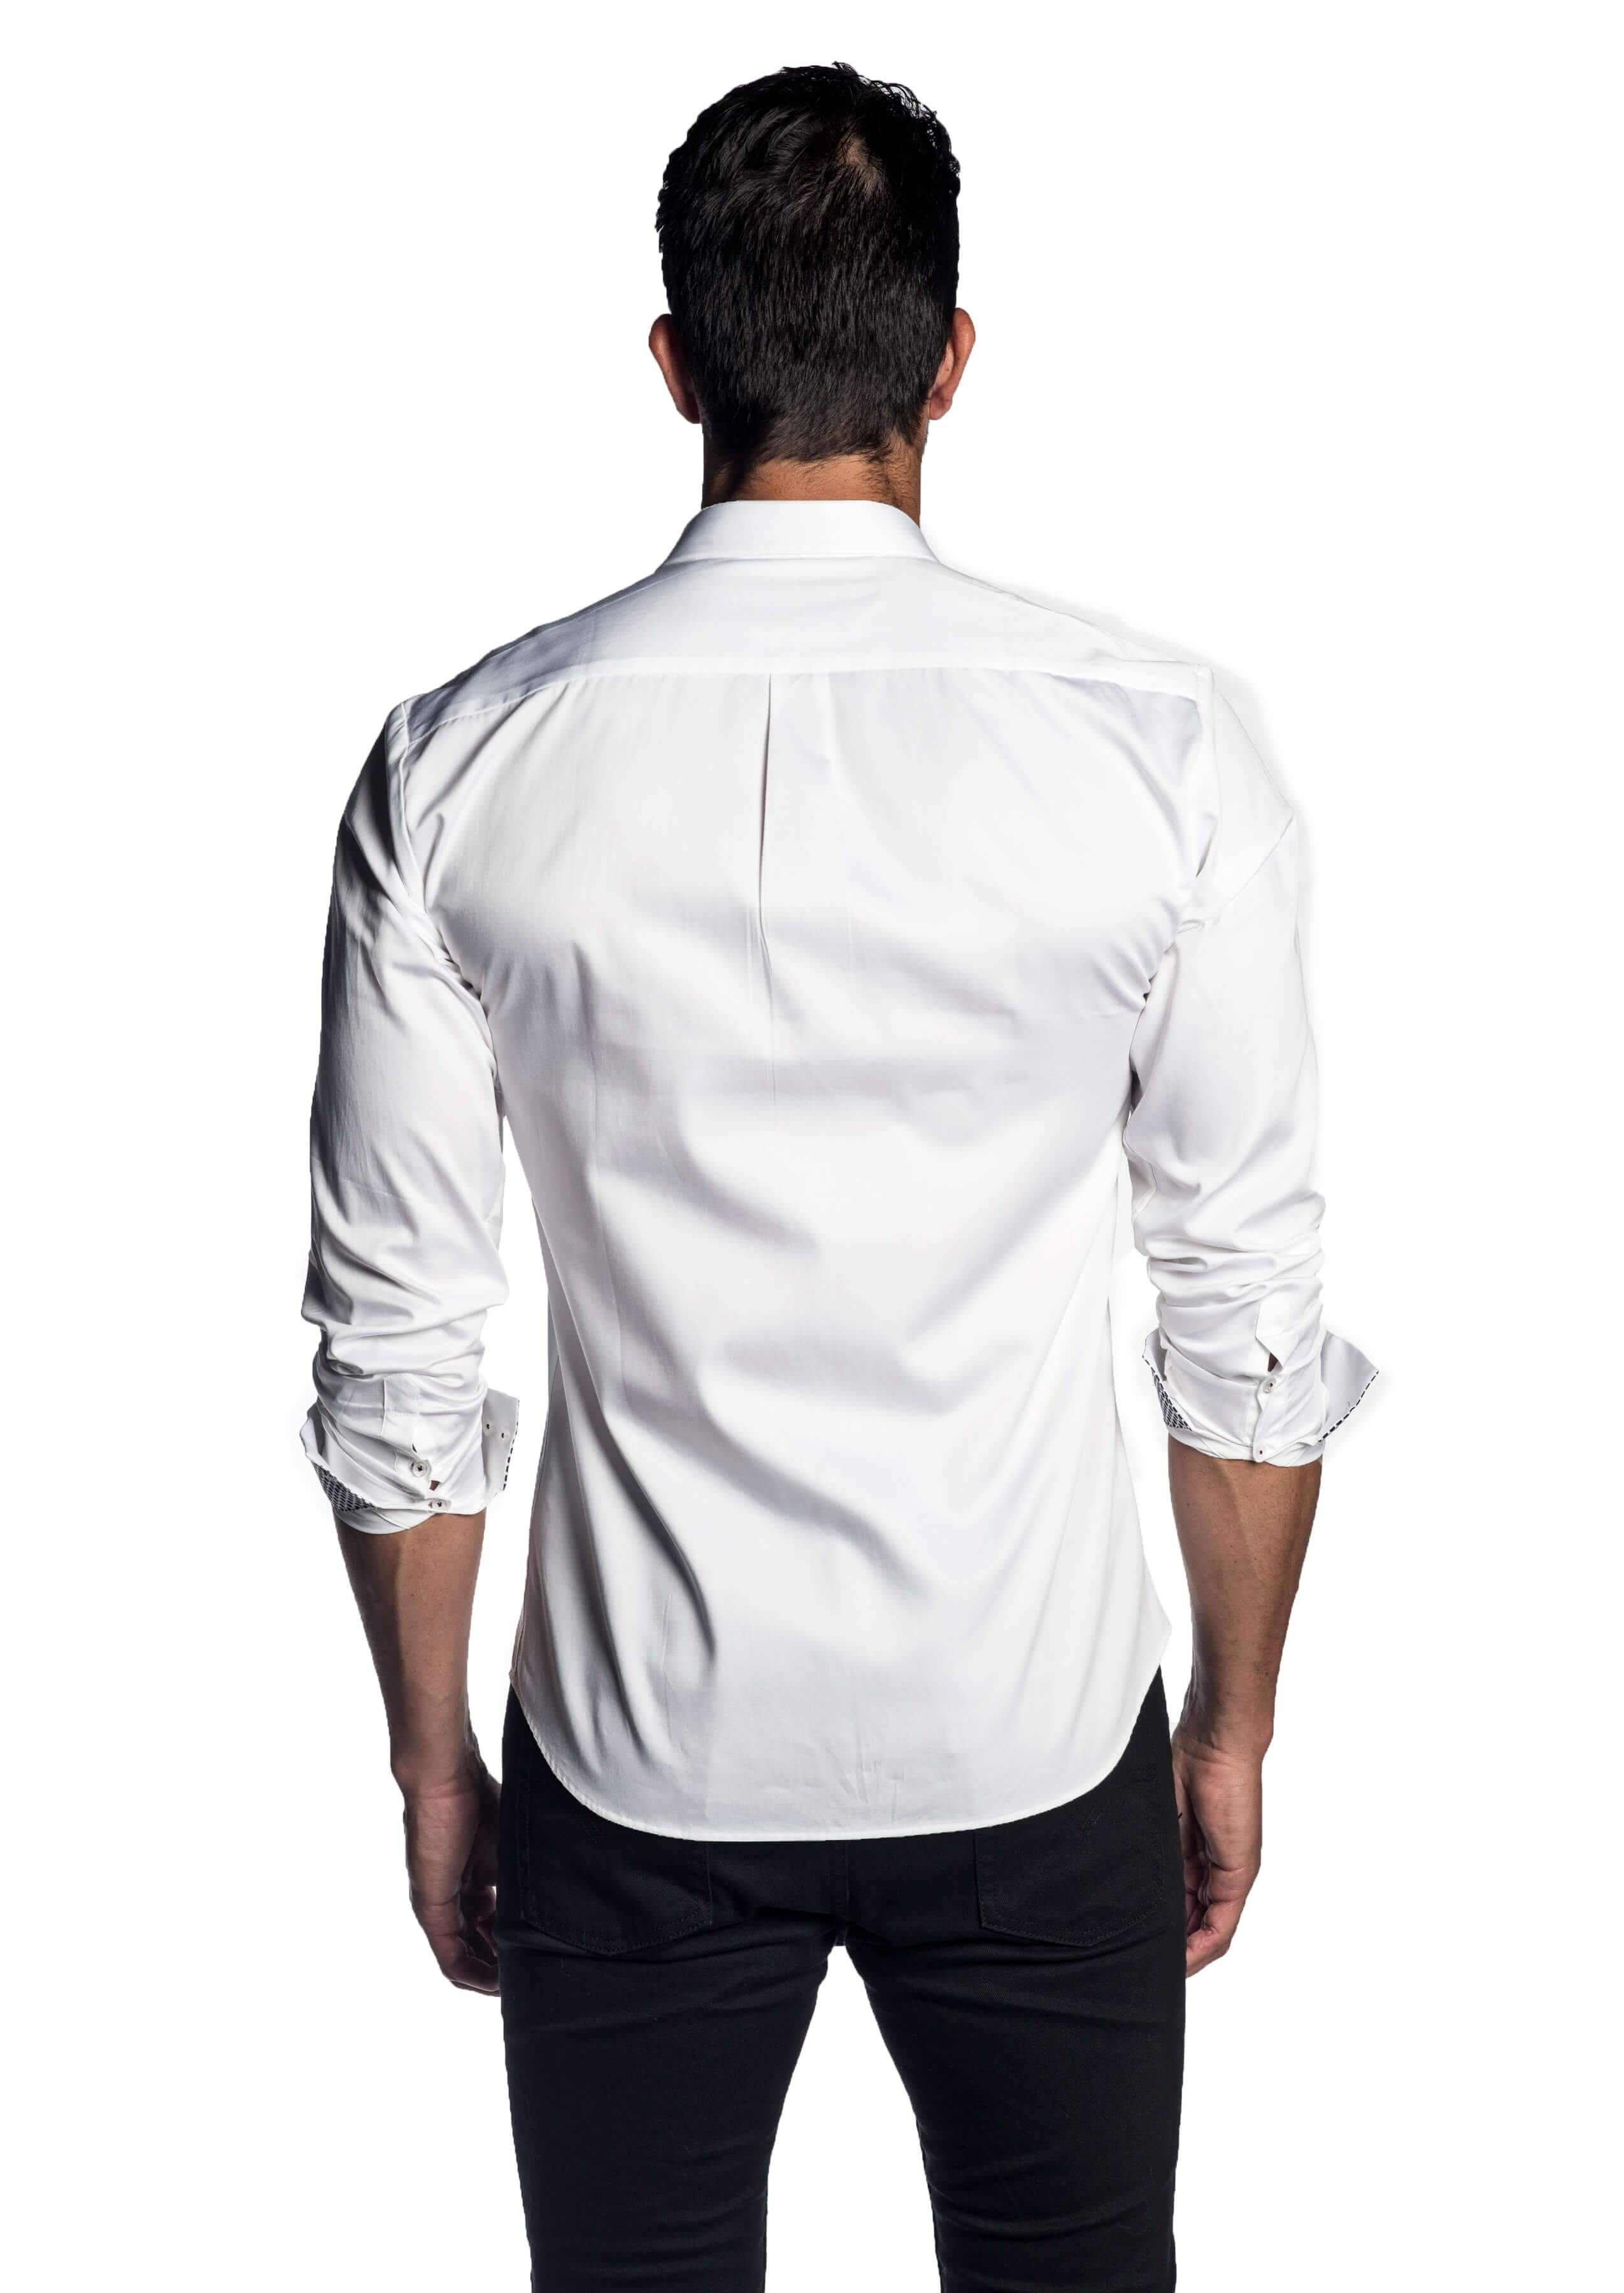 White Solid Shirt for Men - back AH-T-7058 - Jared Lang Collection